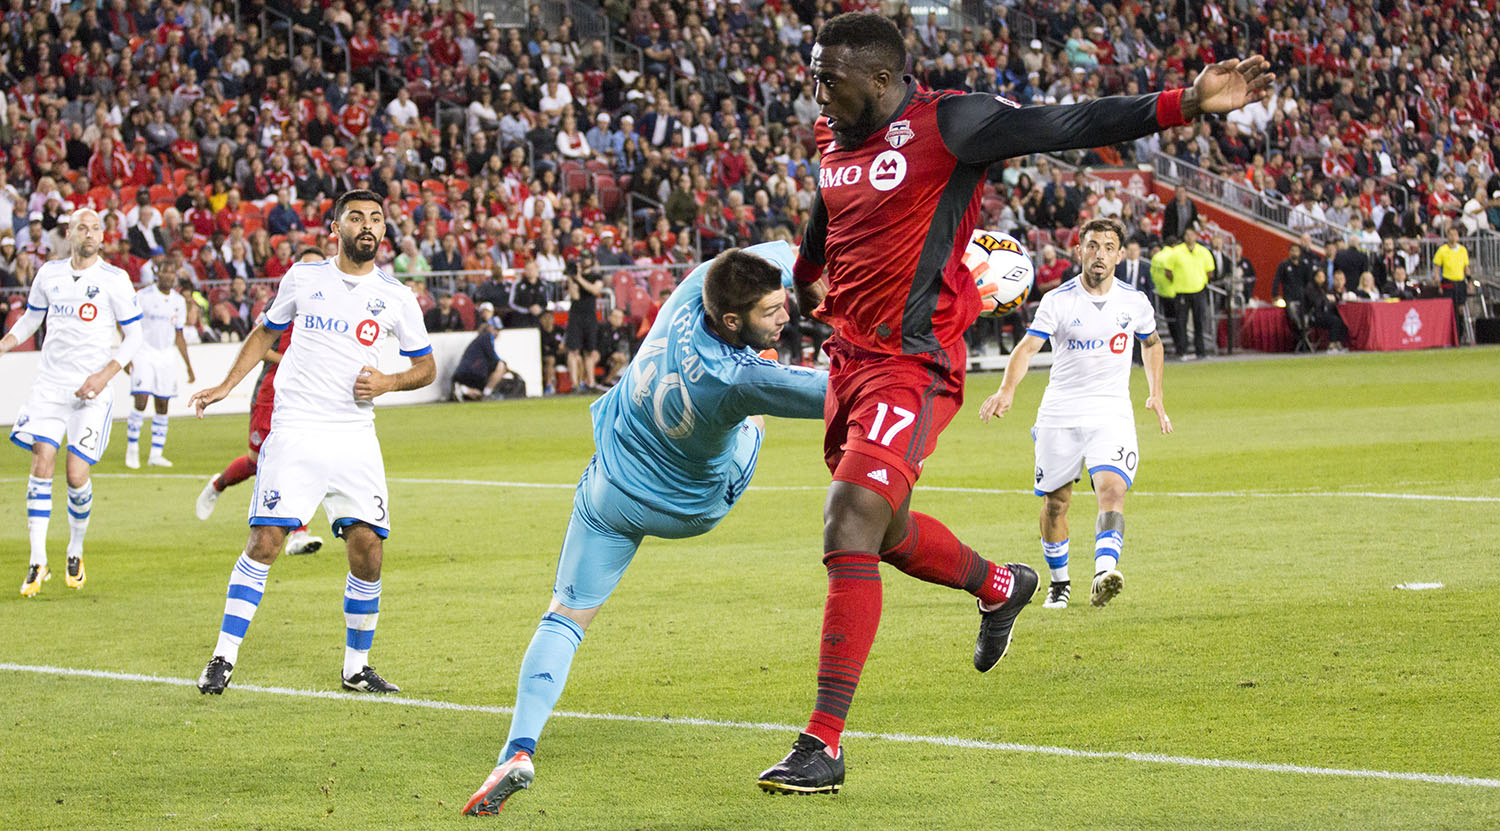 Jozy Altidore tries to get the ball past the Montreal Impact goalkeeper as he snatches it out of the air with his hands.Image by Dennis Marciniak of denMAR Media.